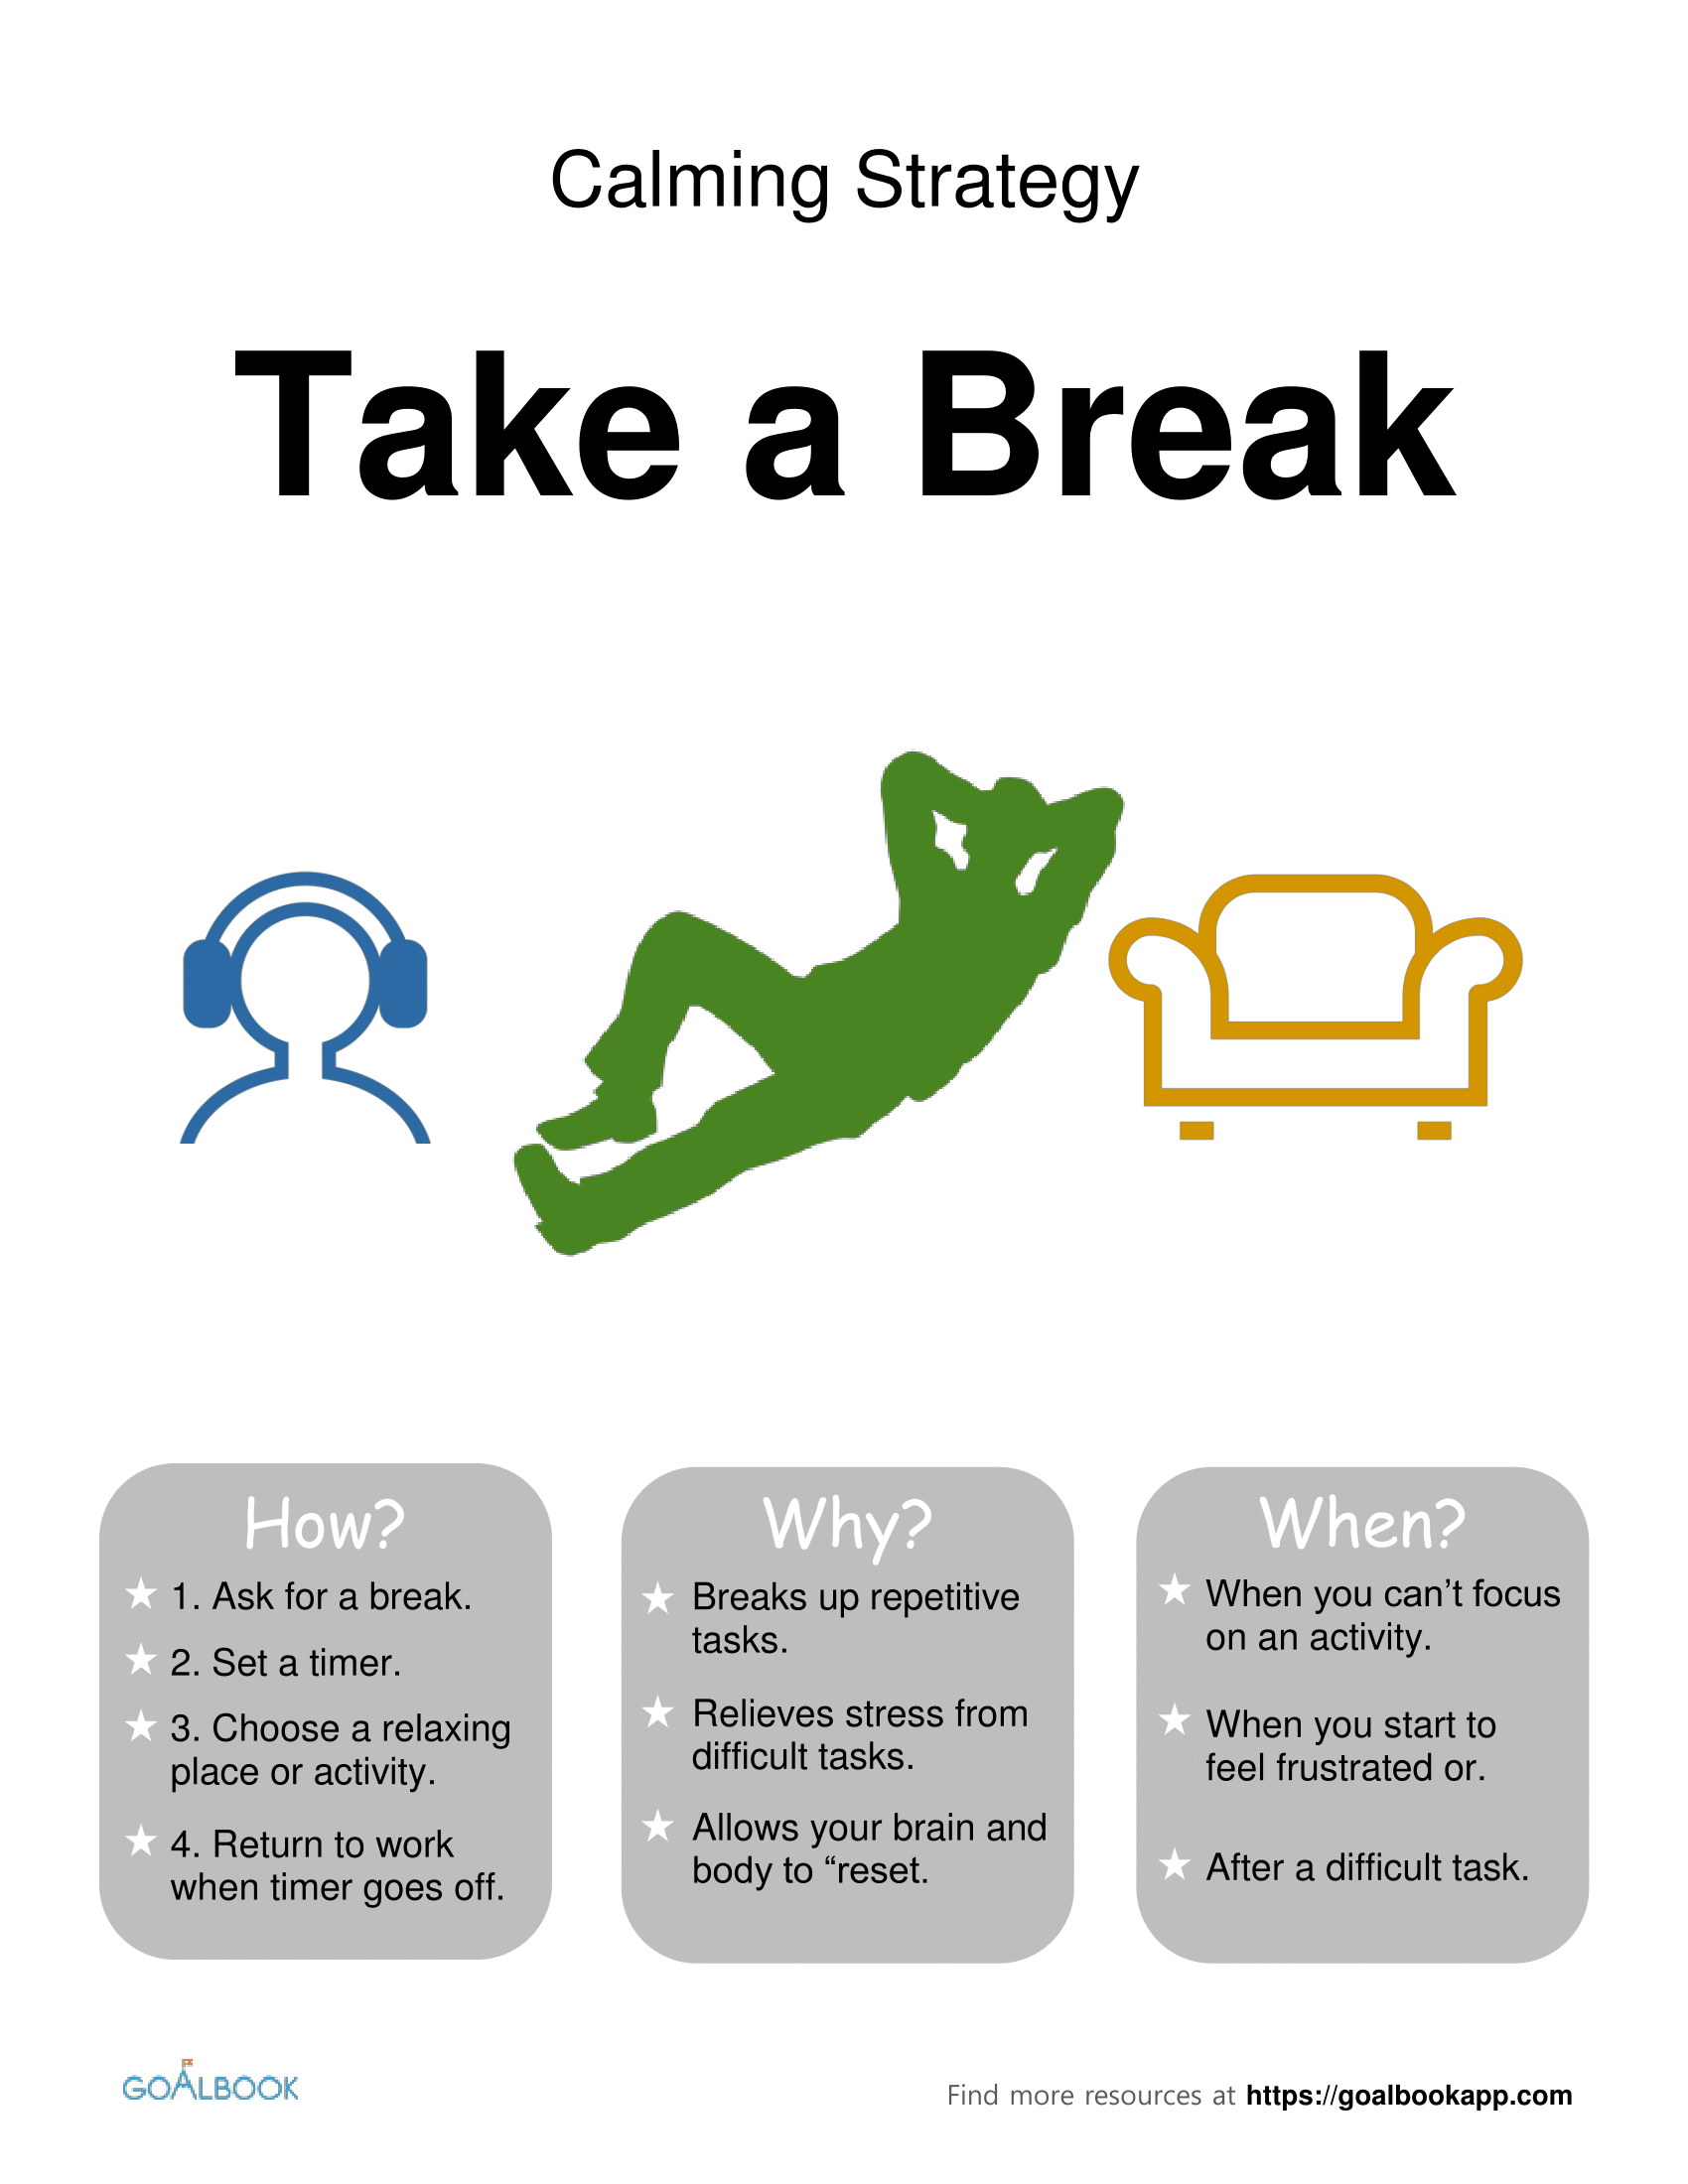 Take a Break: Calming Strategy Poster